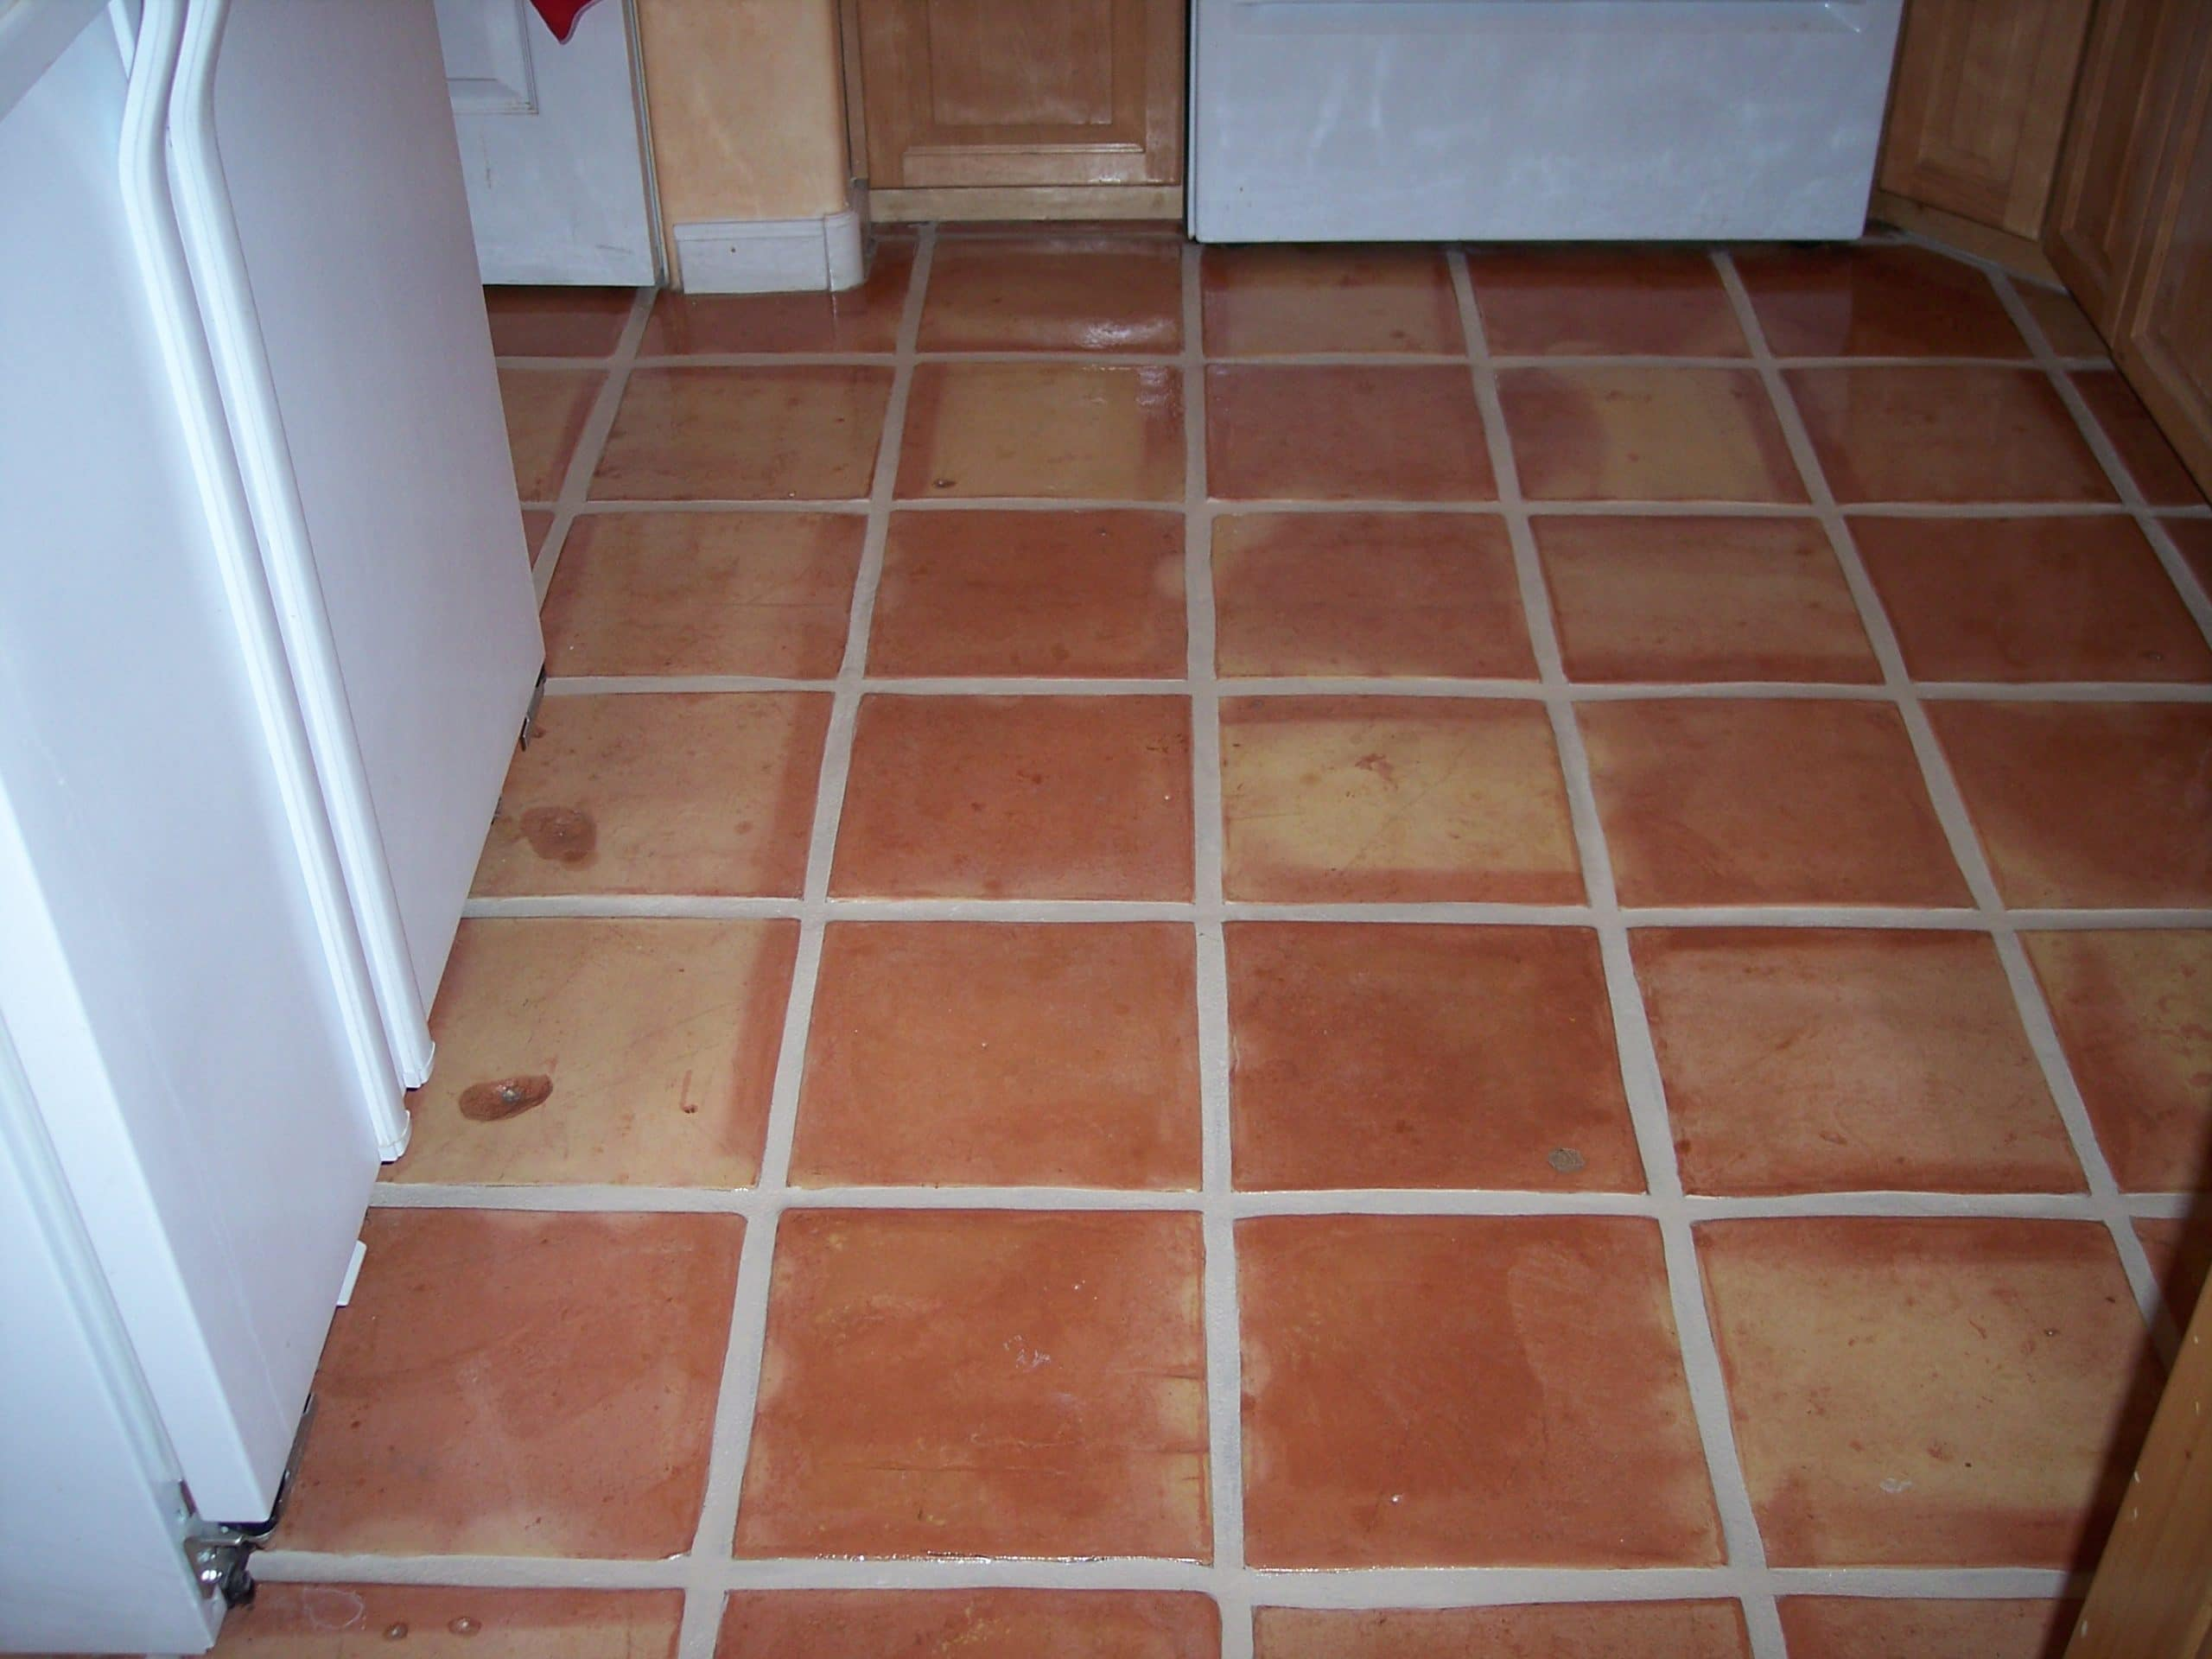 Mexican Tile Cleaning | Desert Tile & Grout Care